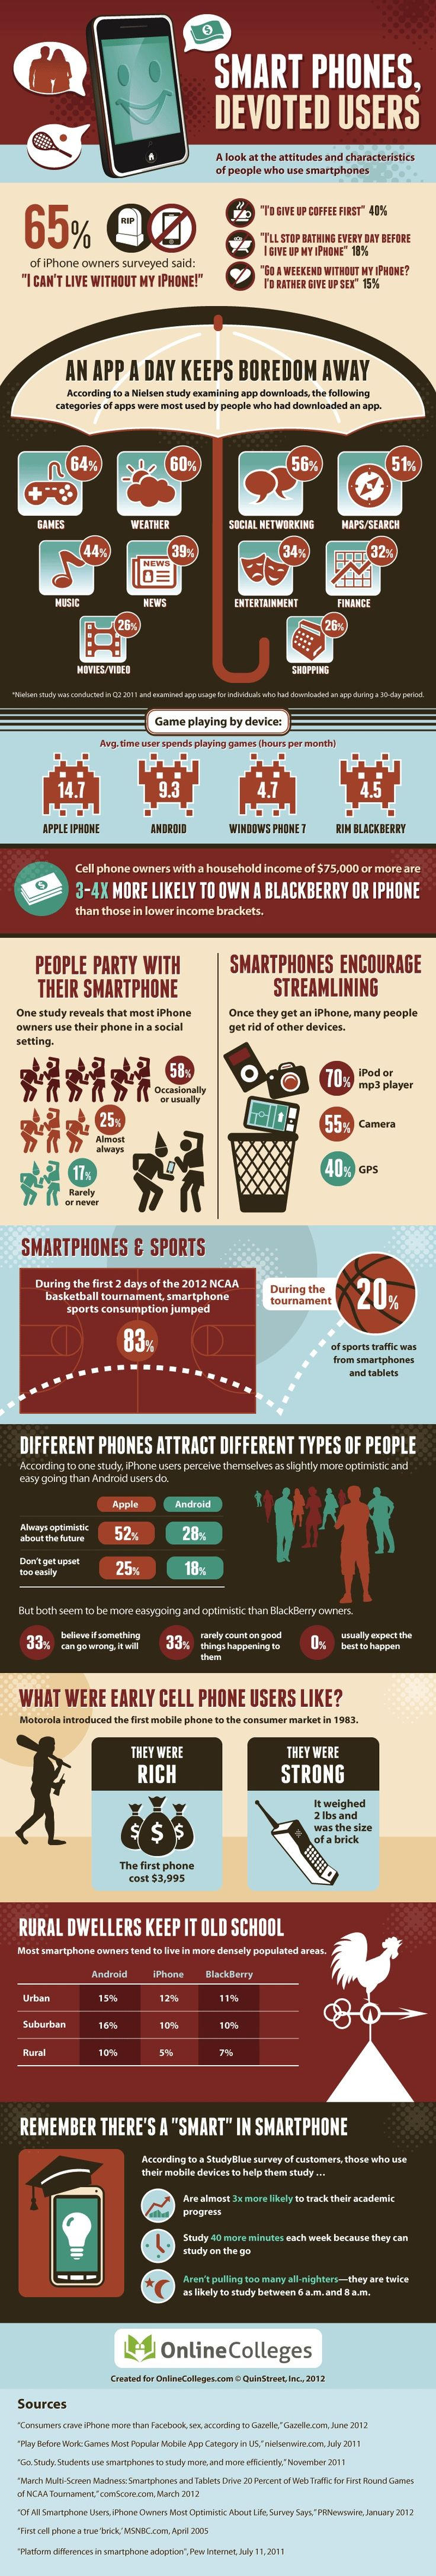 Are You Addicted to Your Smartphone? - Infographic